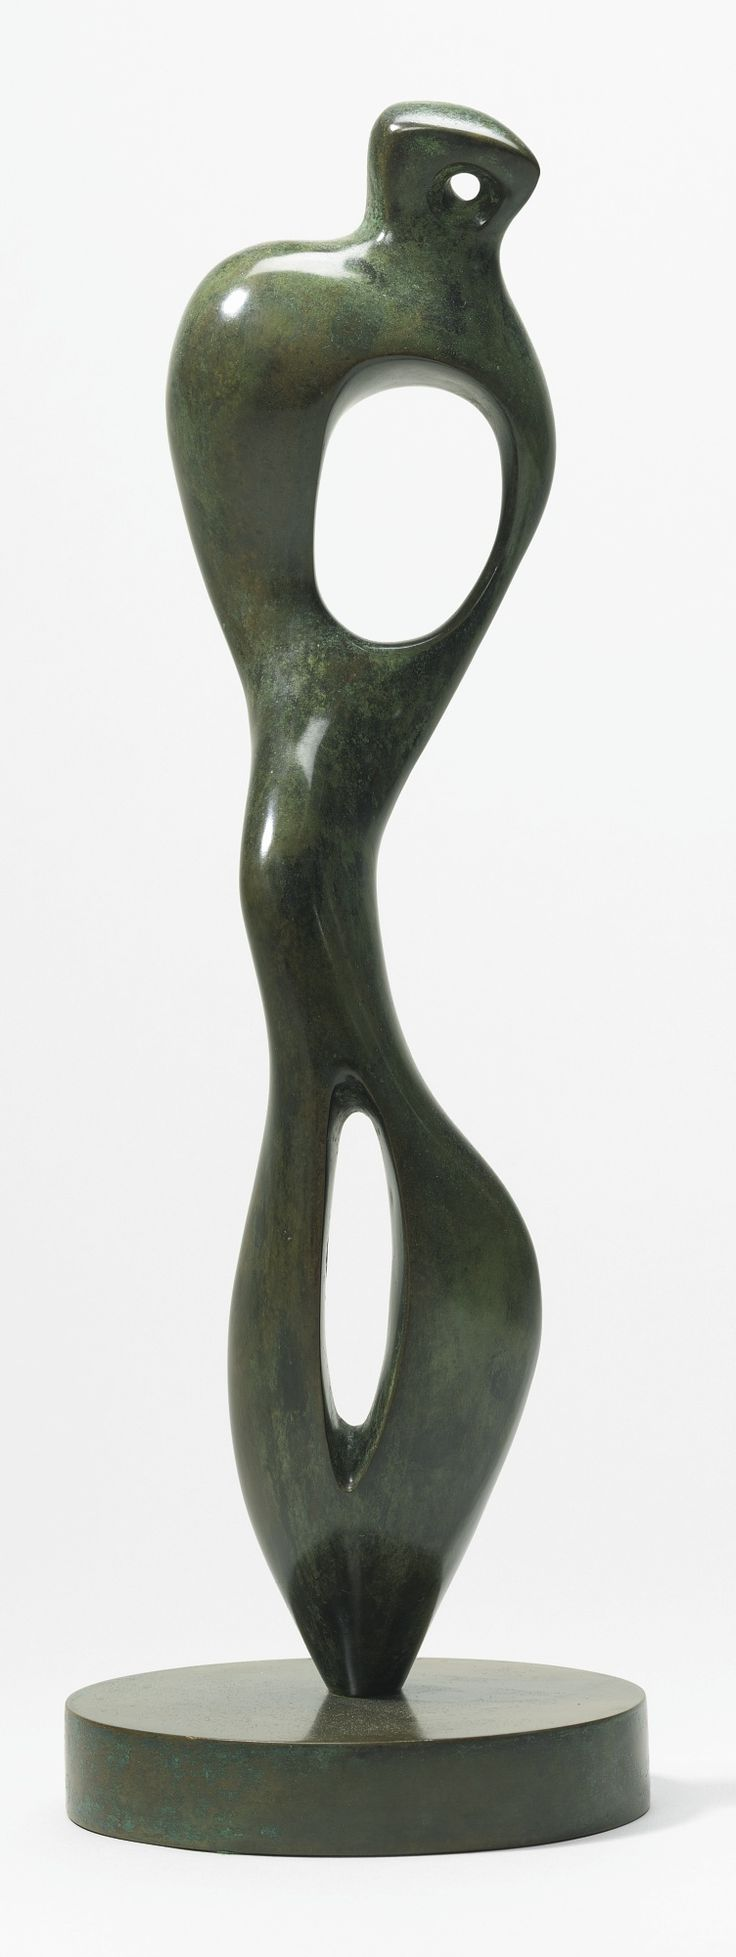 HENRY MOORE 1898 - 1986 INTERIOR FORM  Inscribed Moore and numbered 6/9 Bronze Height: 19 1/4 in. 48.8 cm Conceived in 1951 and cast in 1981